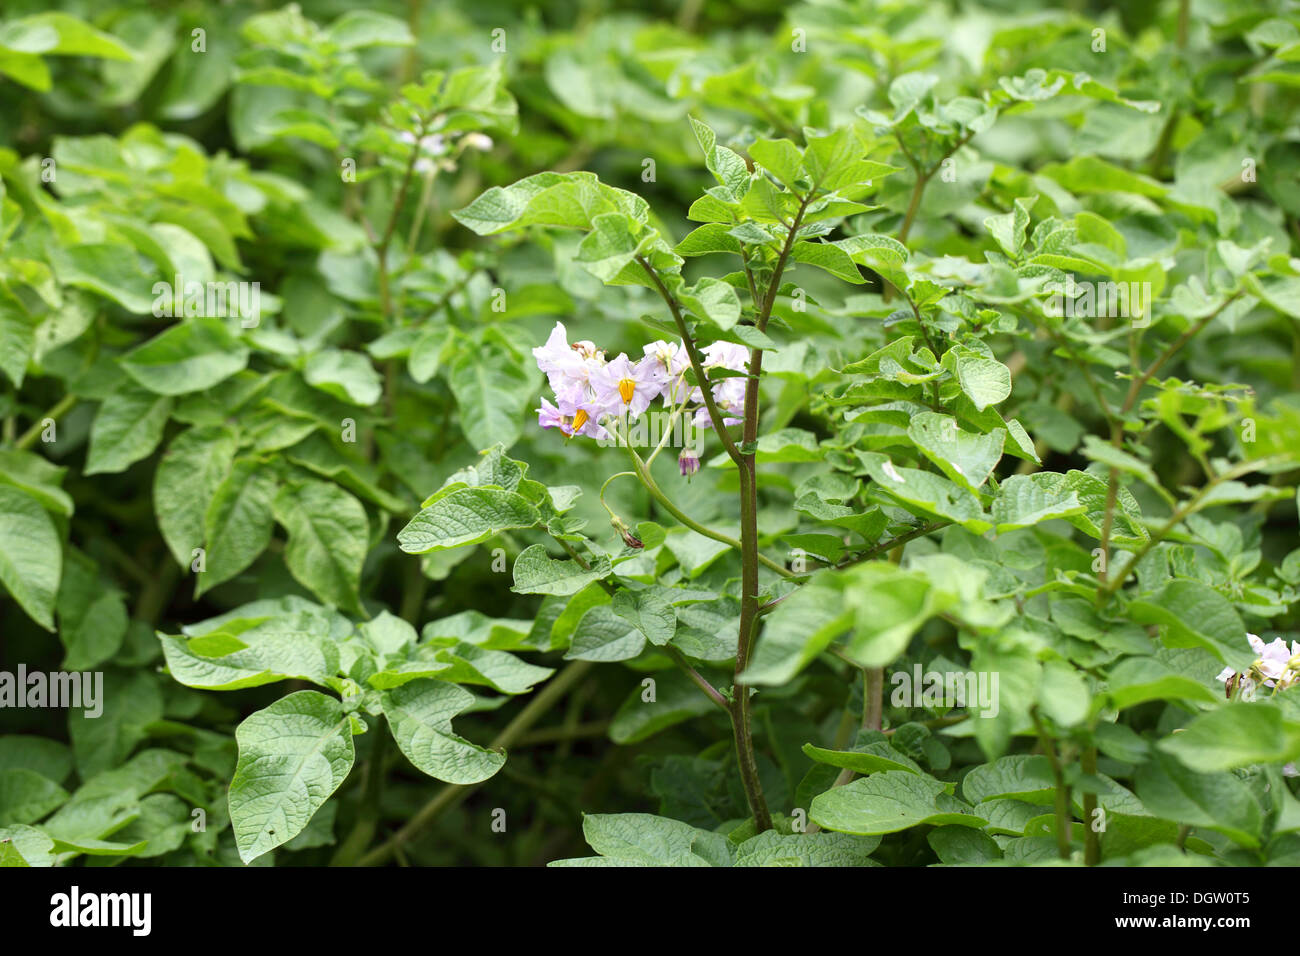 flowers potatoes on field Stock Photo, Royalty Free Image ...